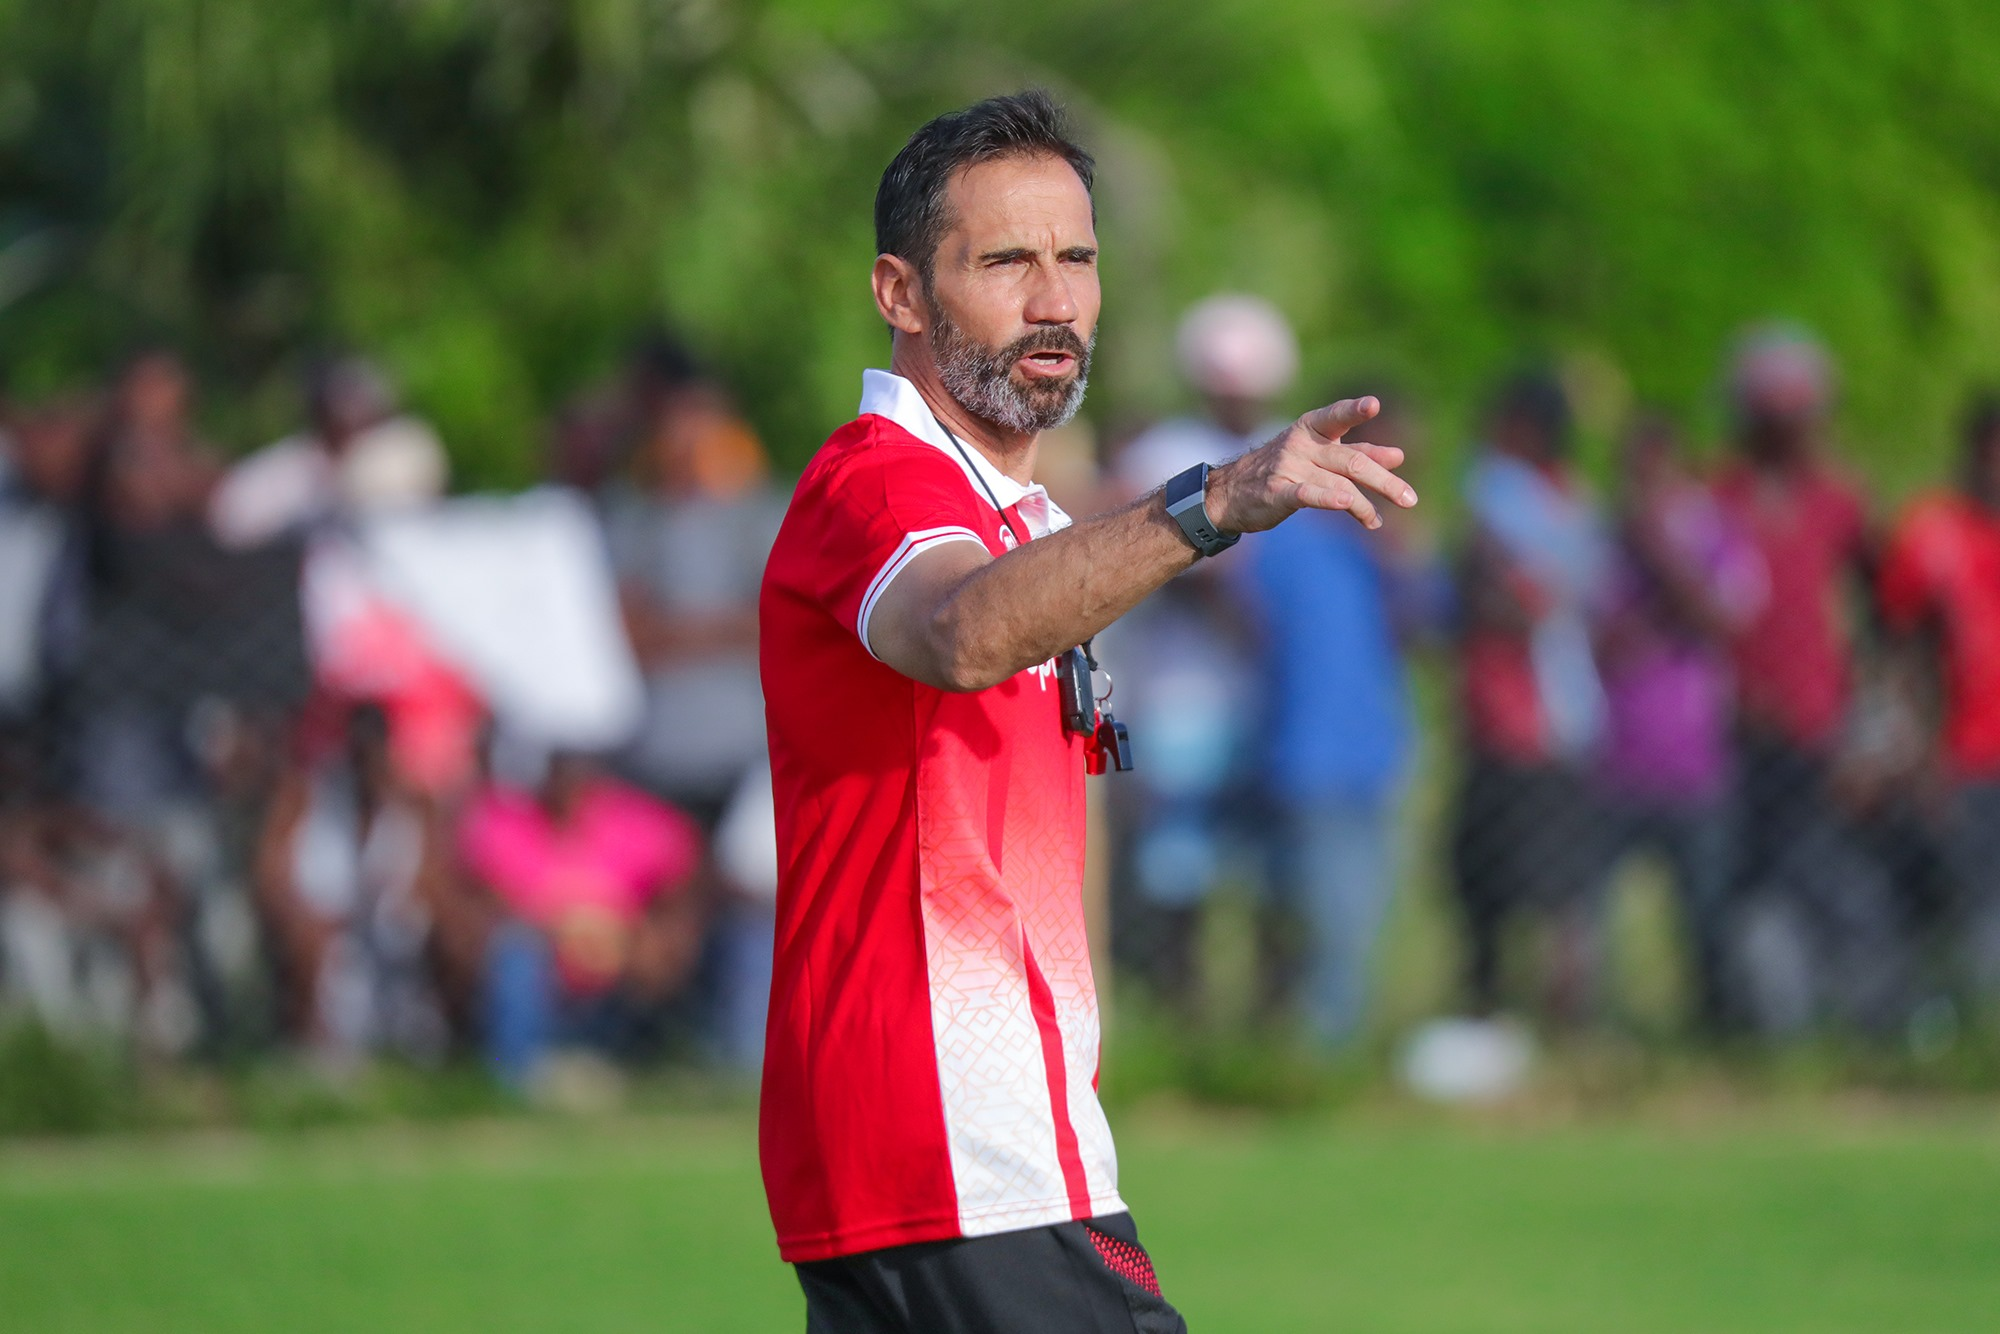 New Simba coach Da Rosa warns players he is 'very demanding'